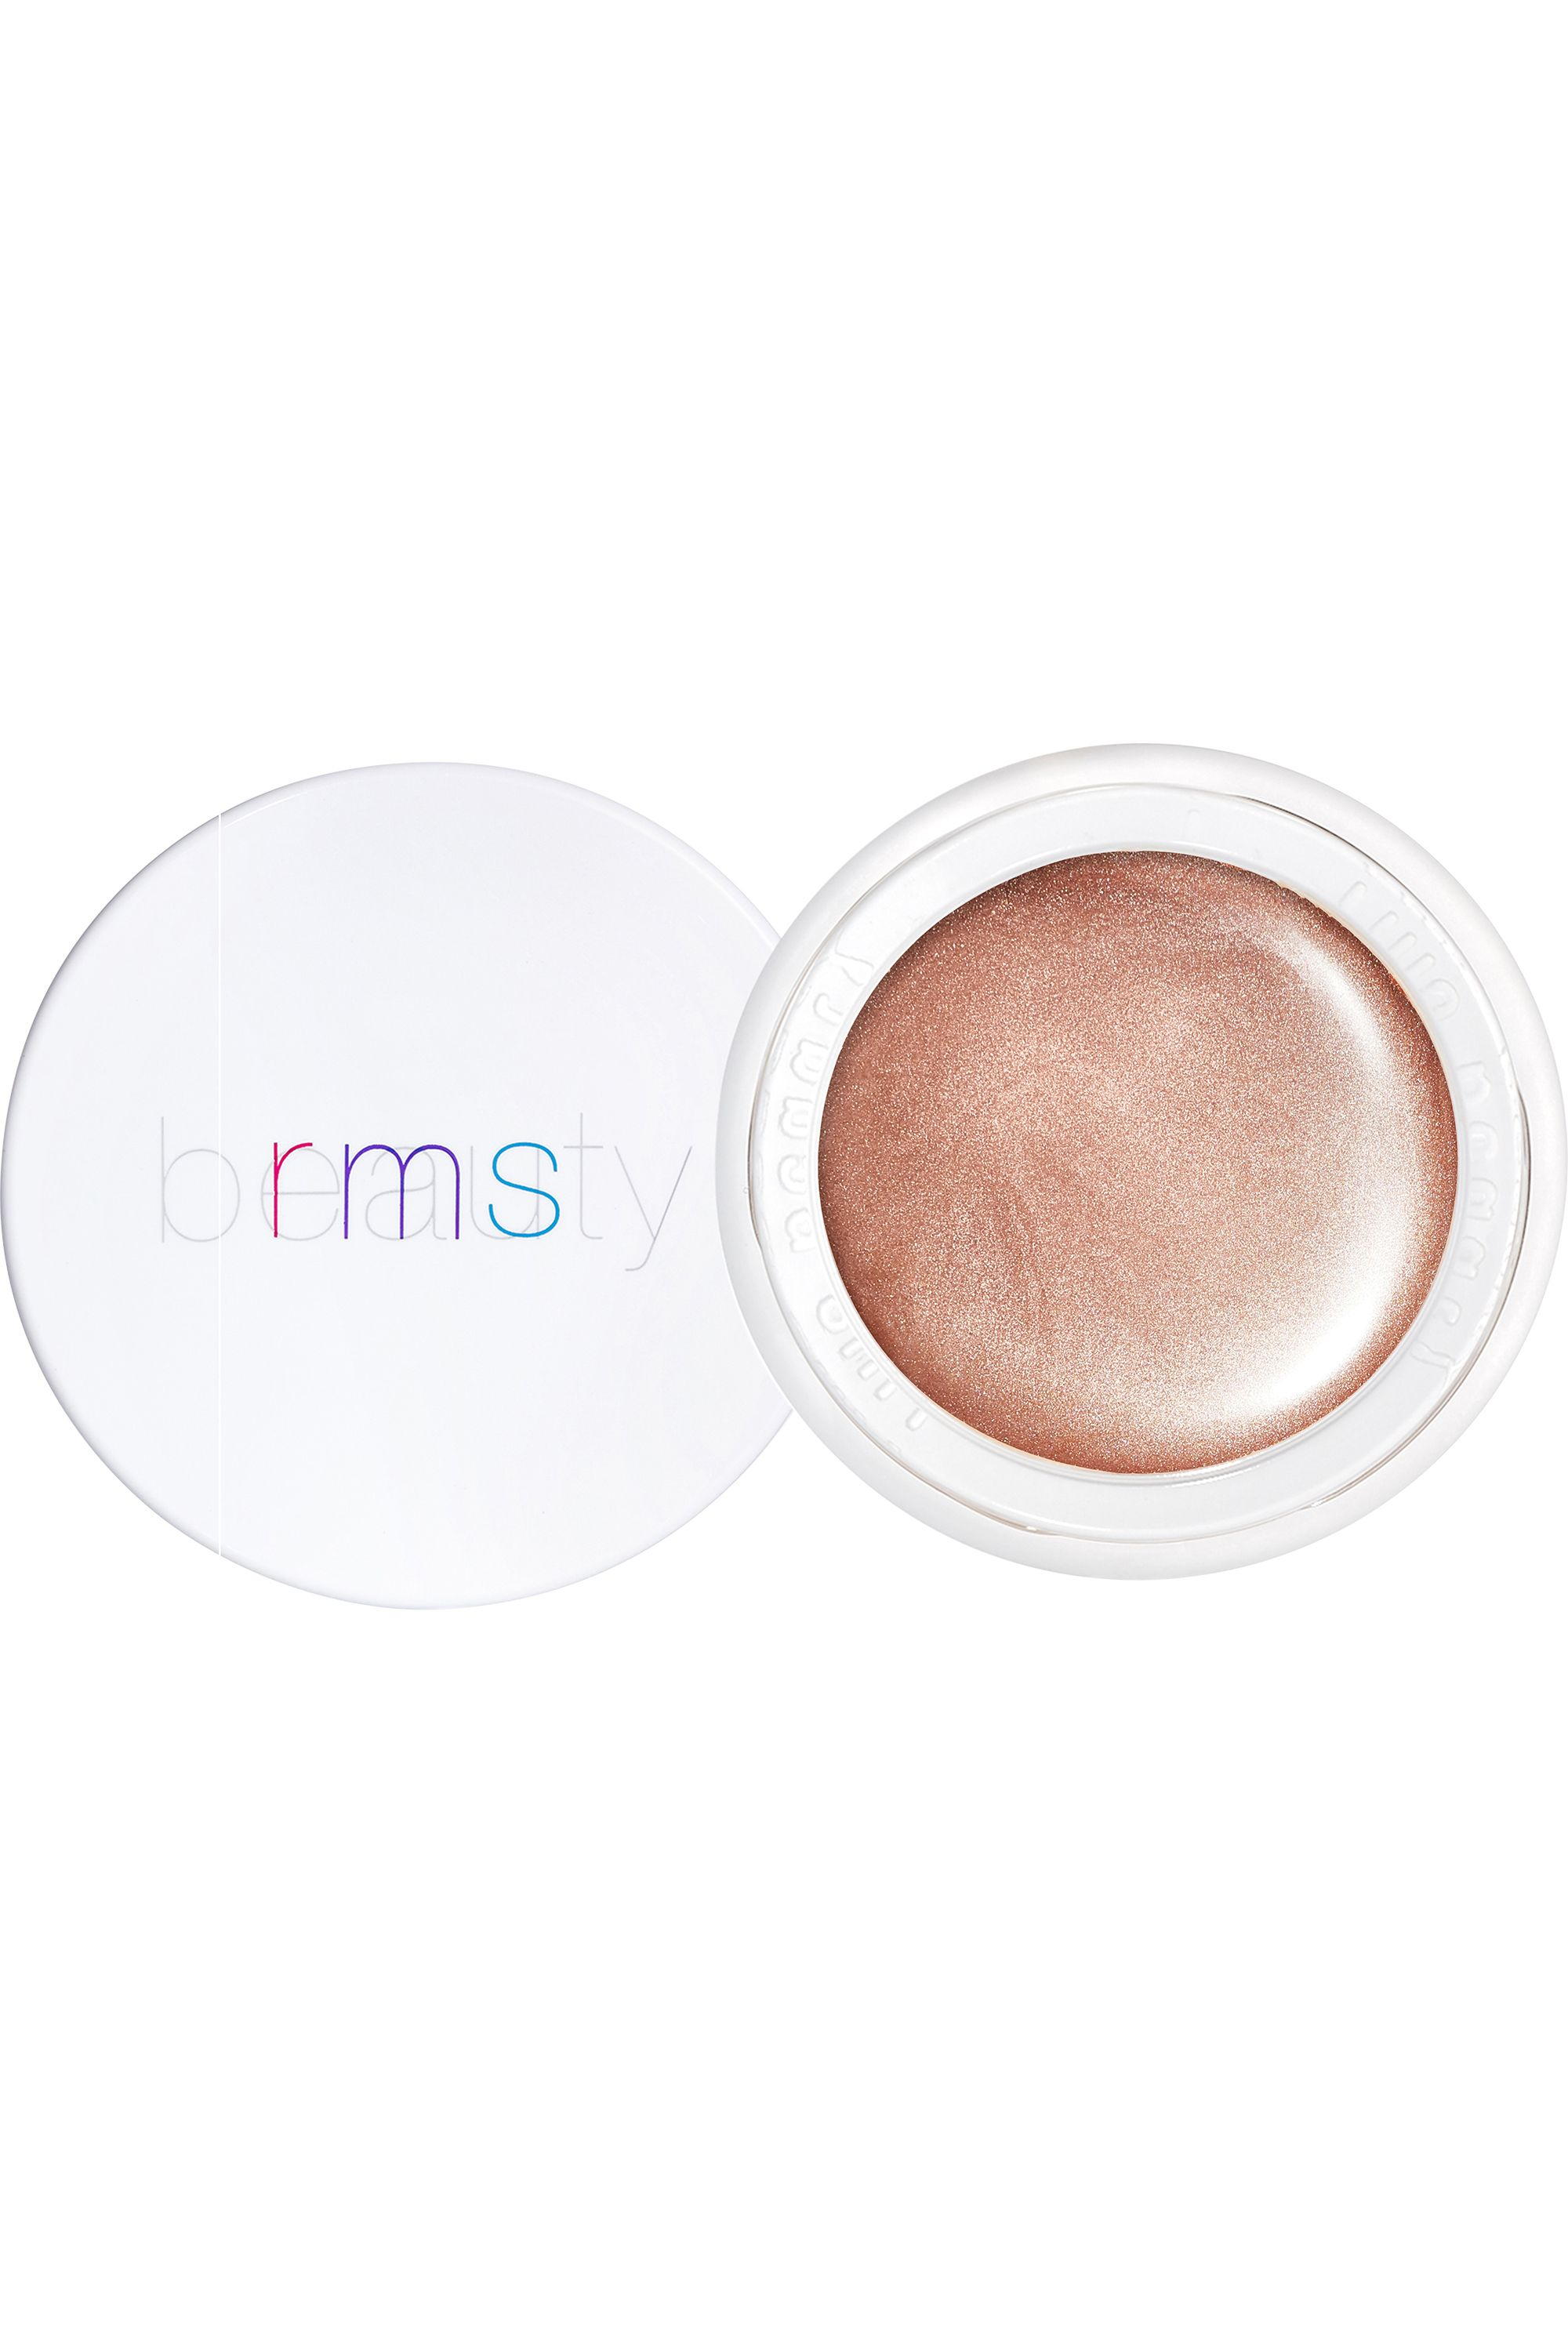 Blissim : RMS Beauty - Peach Luminizer - Peach Luminizer